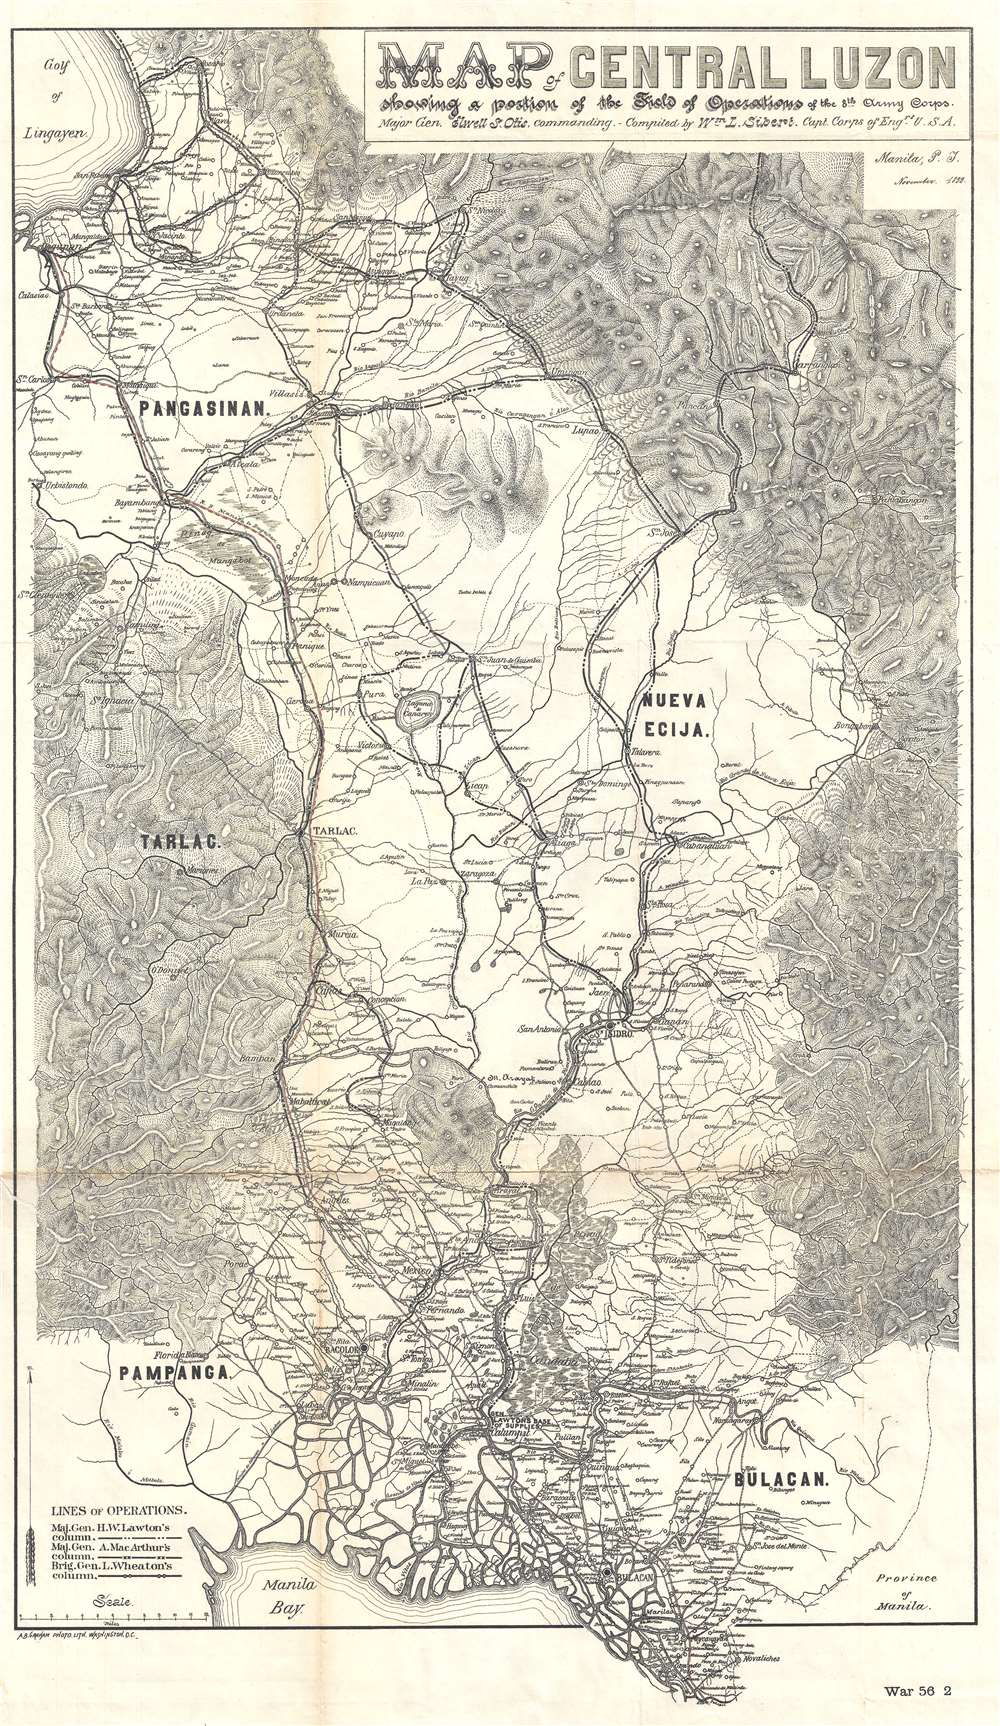 Map of Central Luzon showing a portion of the Field of Operations of the 8th Army Corps.